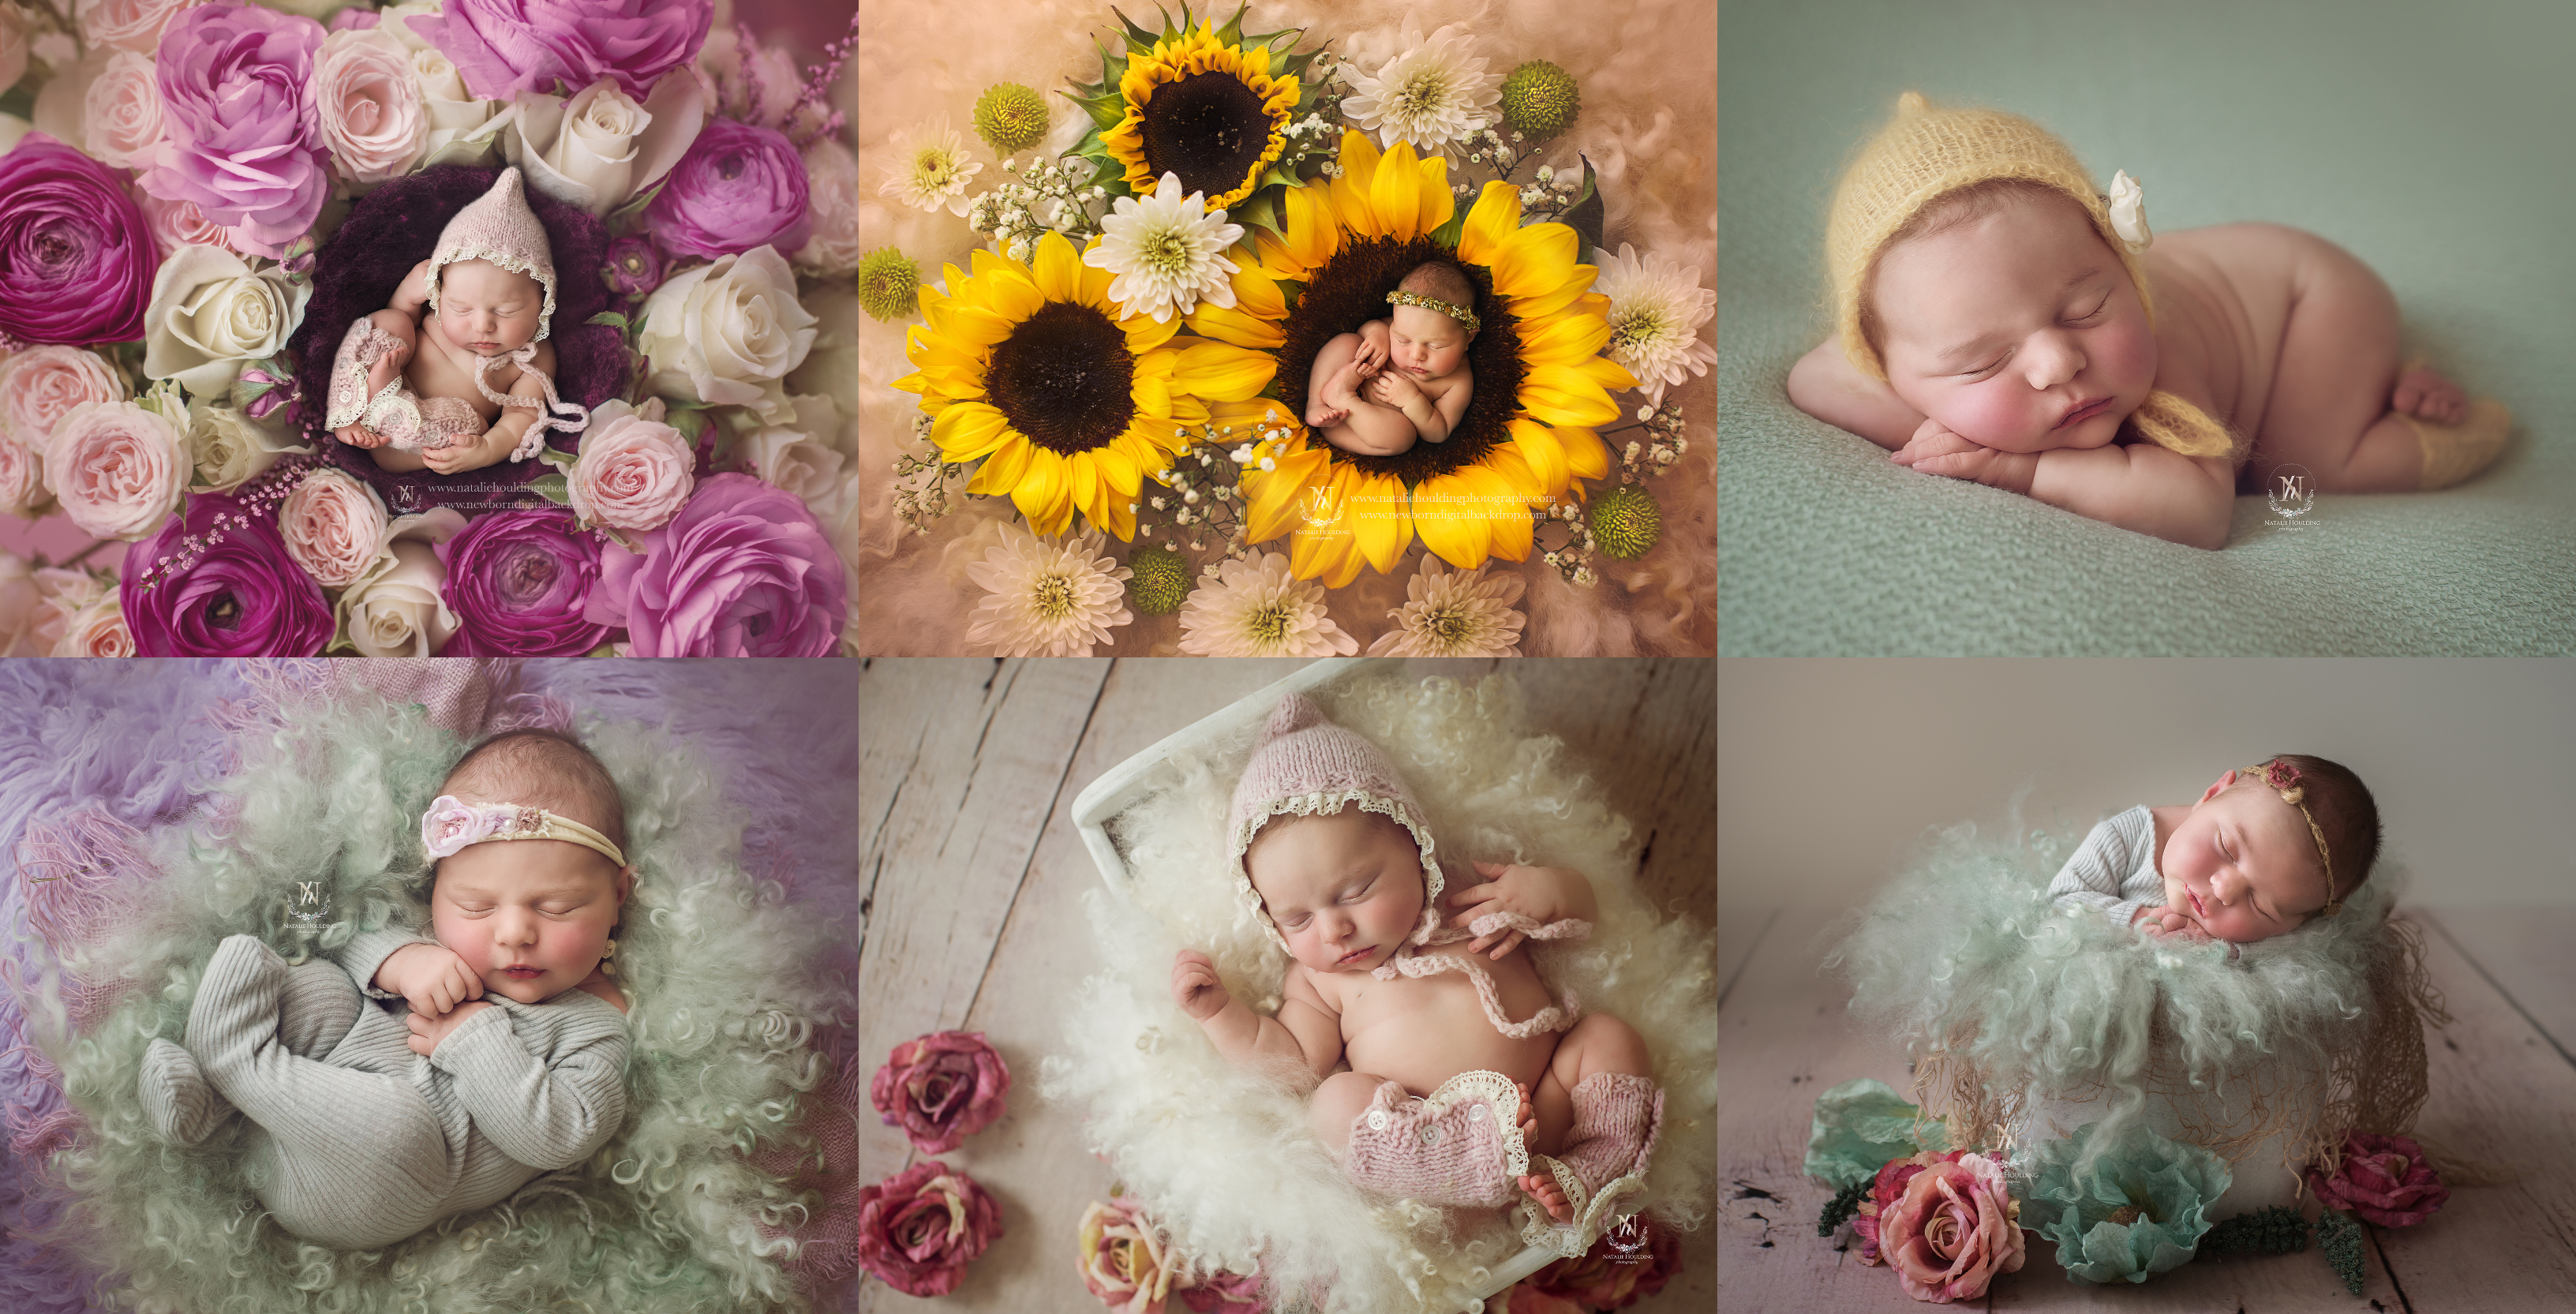 Newborn and maternity photography studio canberra natalie houlding